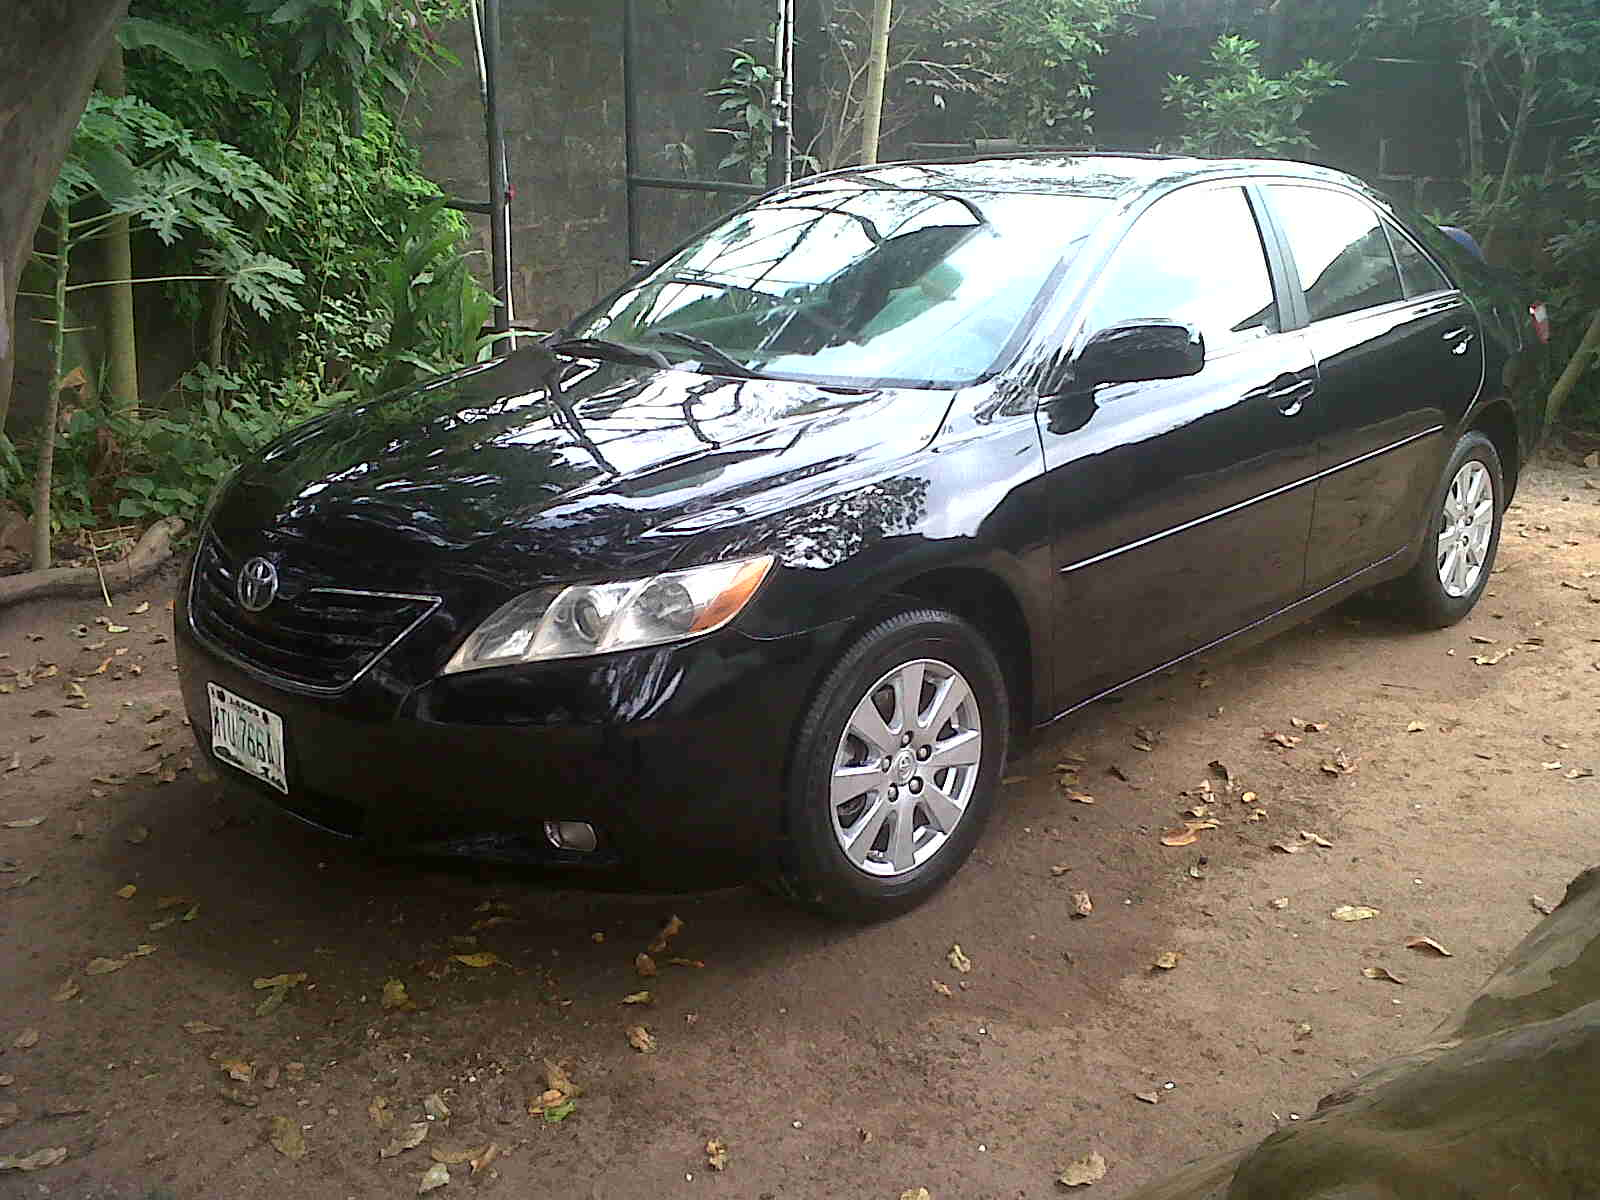 brand new toyota camry muscle grand avanza abs 1 5m autos nigeria